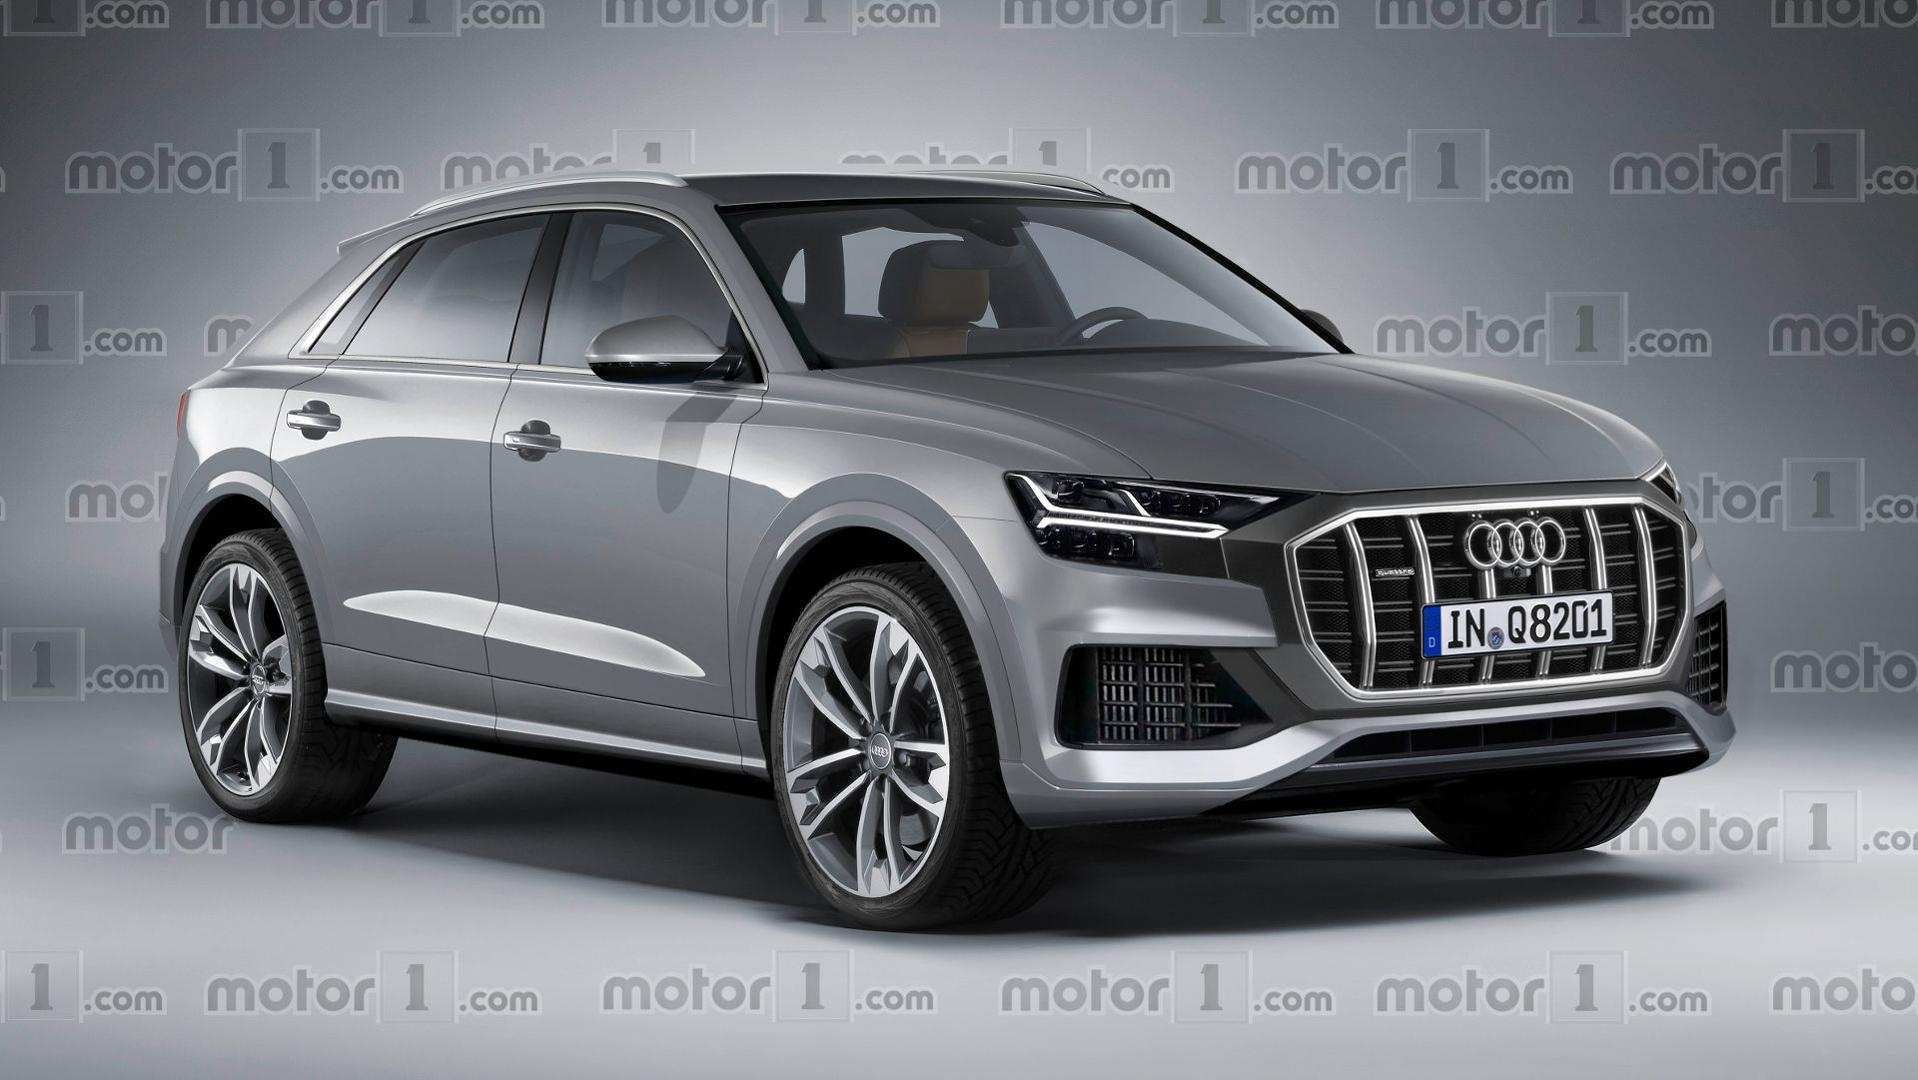 45 Best Review 2019 Audi Q2 Usa Rumors for 2019 Audi Q2 Usa